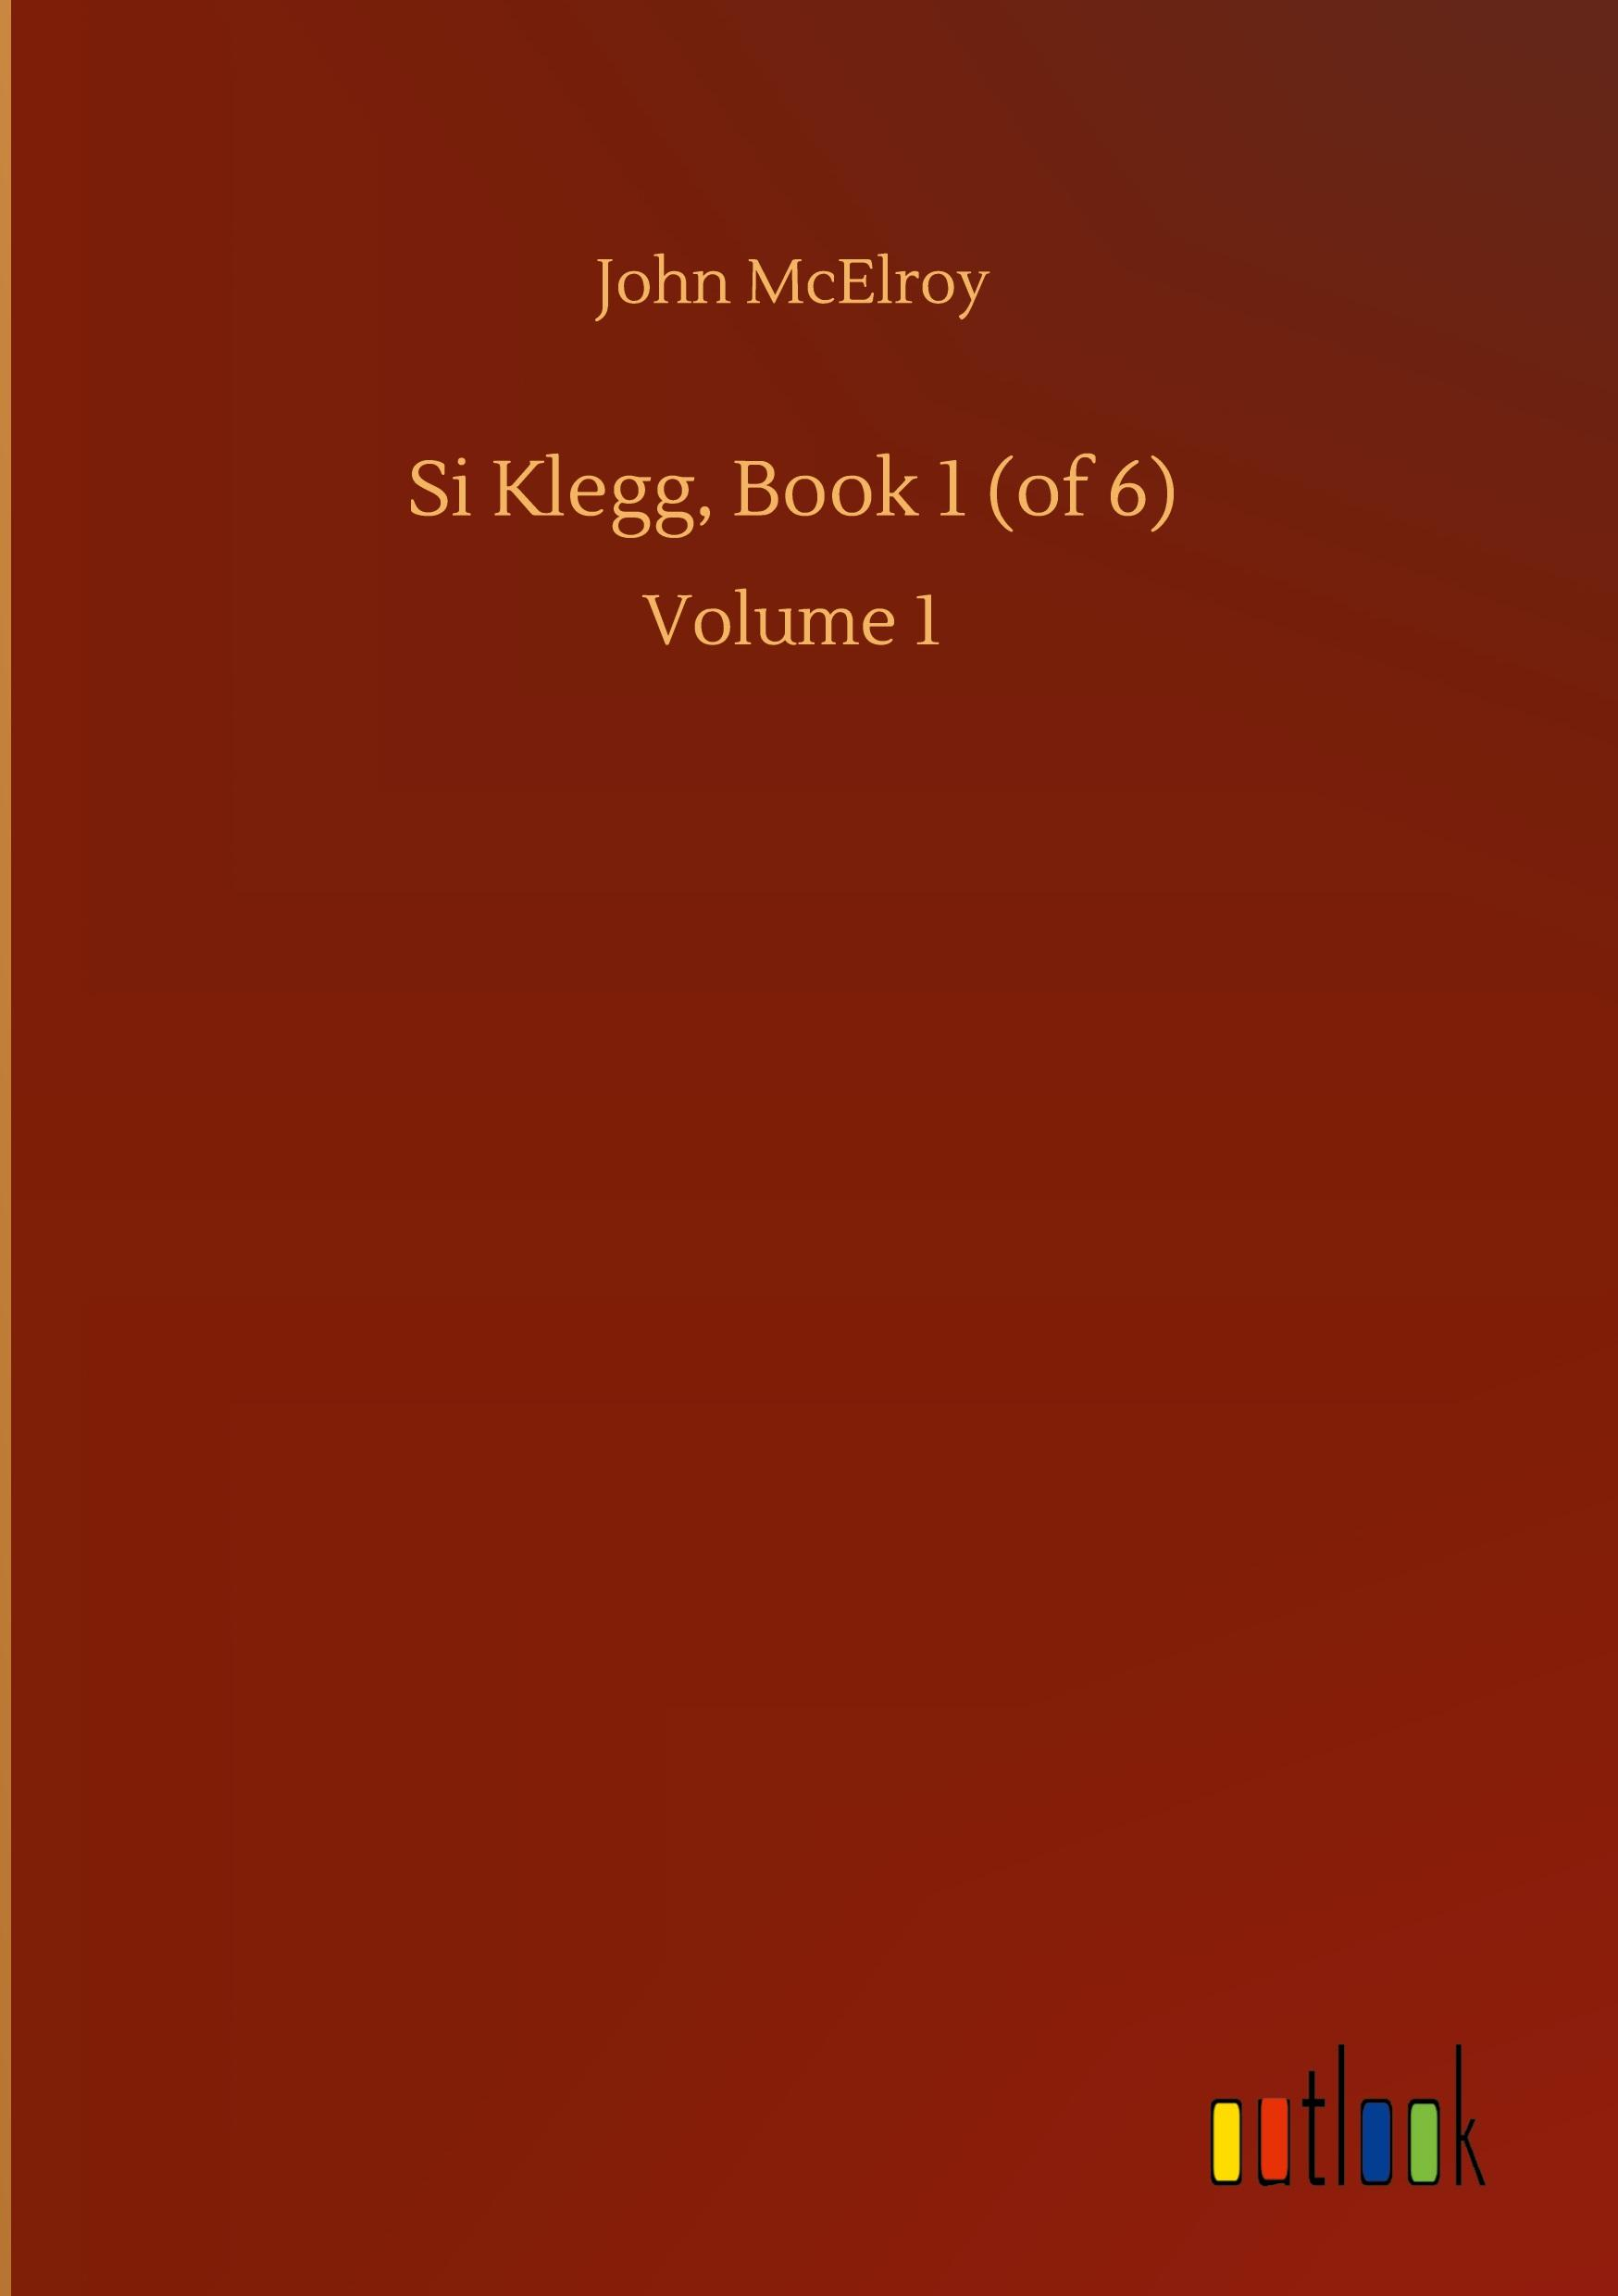 Si Klegg, Book 1 (of 6)